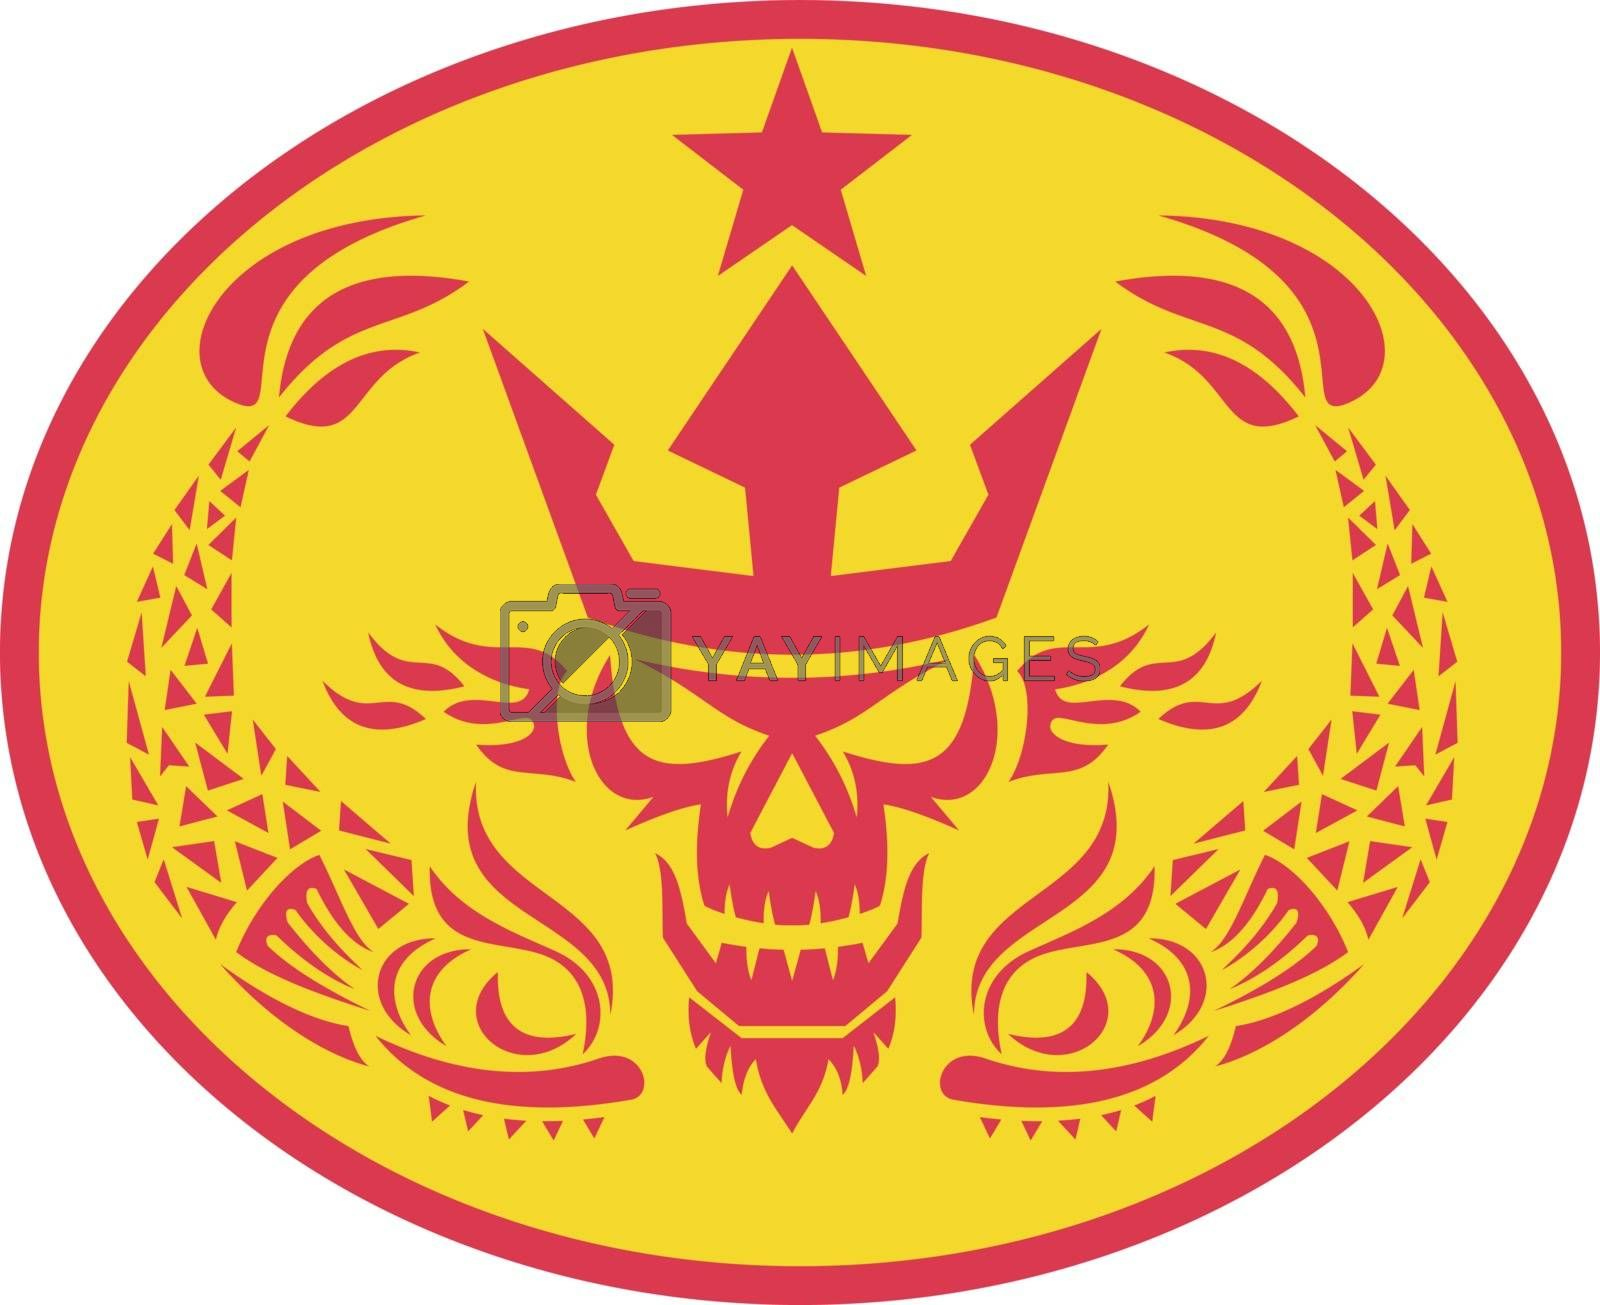 Retro style illustration of head of Neptune Skull wearing a trident crown with two Fish on side and star set inside Oval on isolated background.